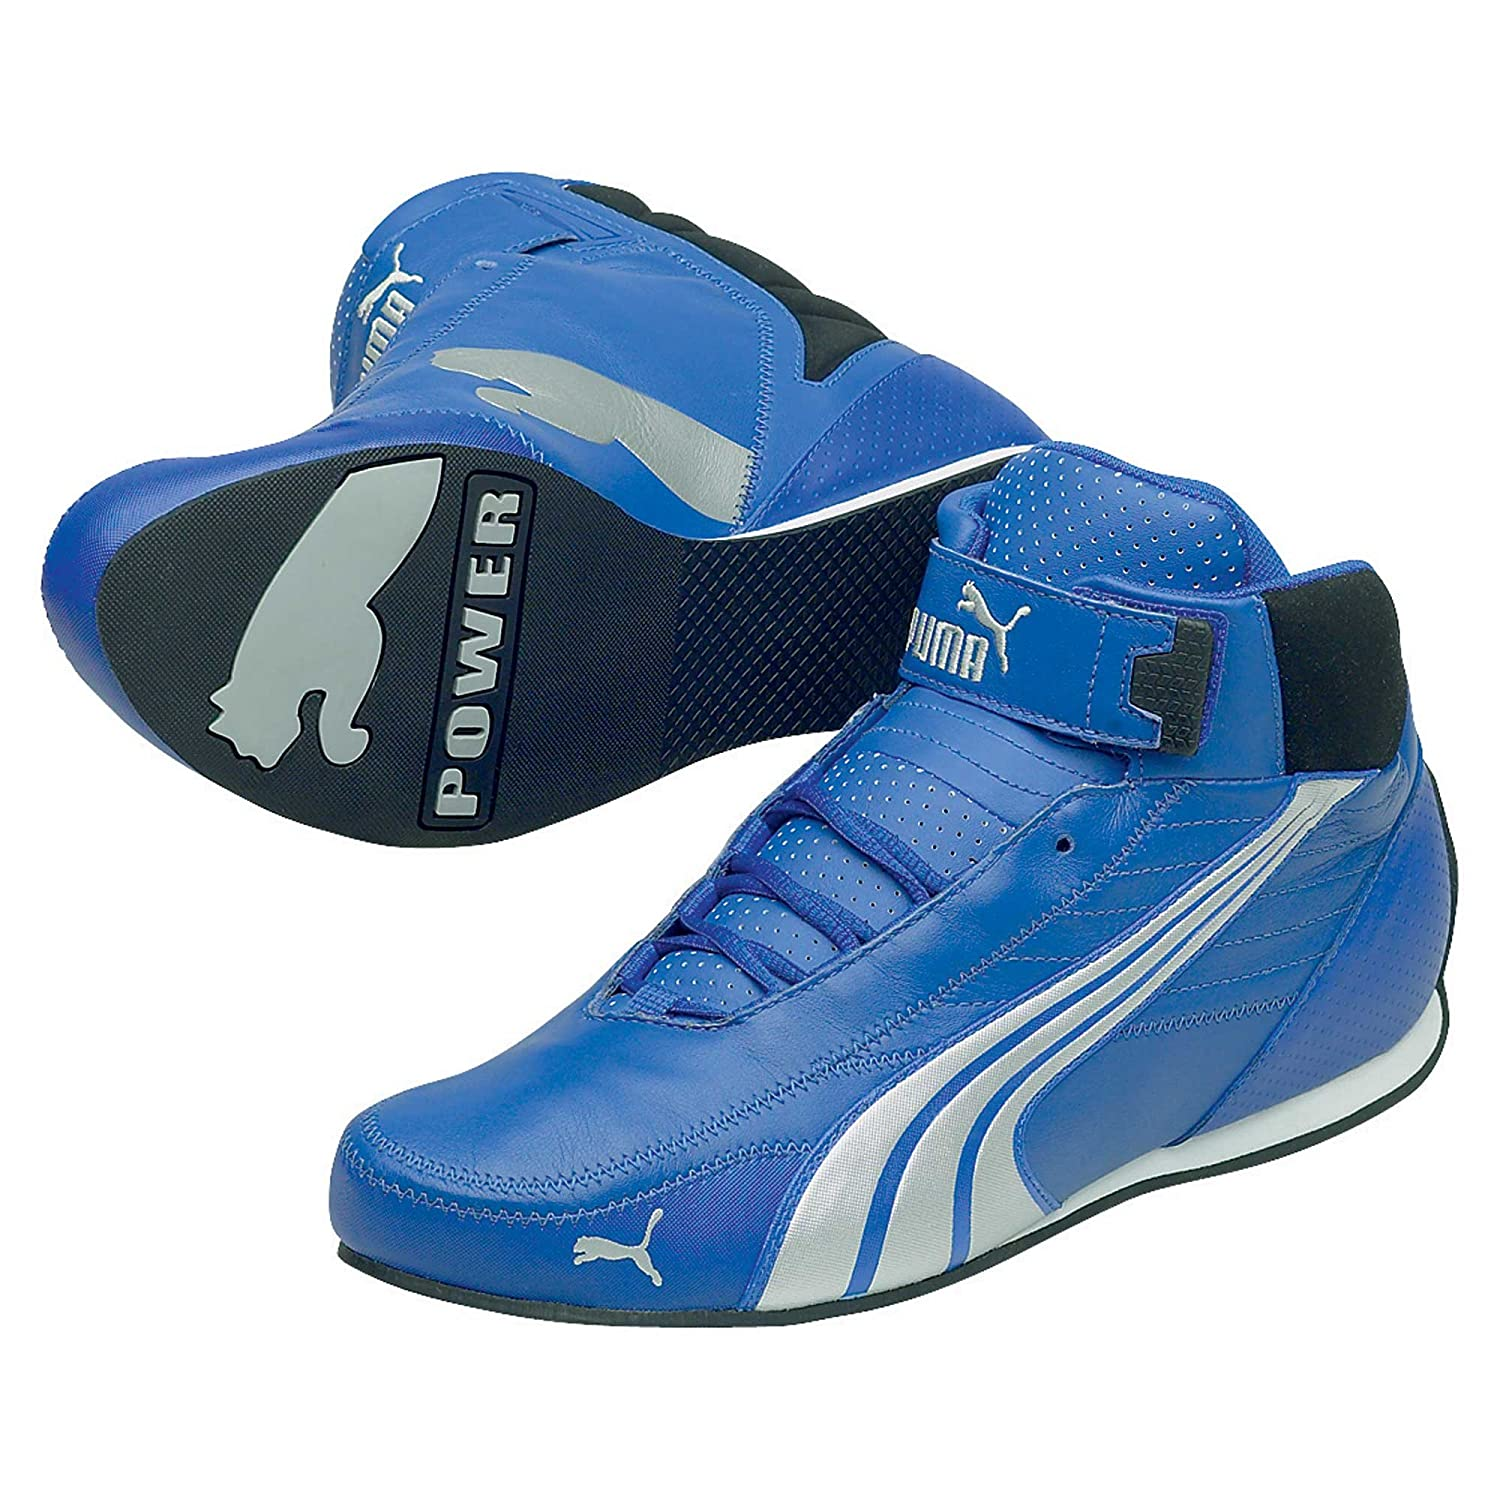 d0f6bed411e742 Puma Kart Cat Mid II Pro Go Karting Boots Blue (5 UK)  Amazon.co.uk ...